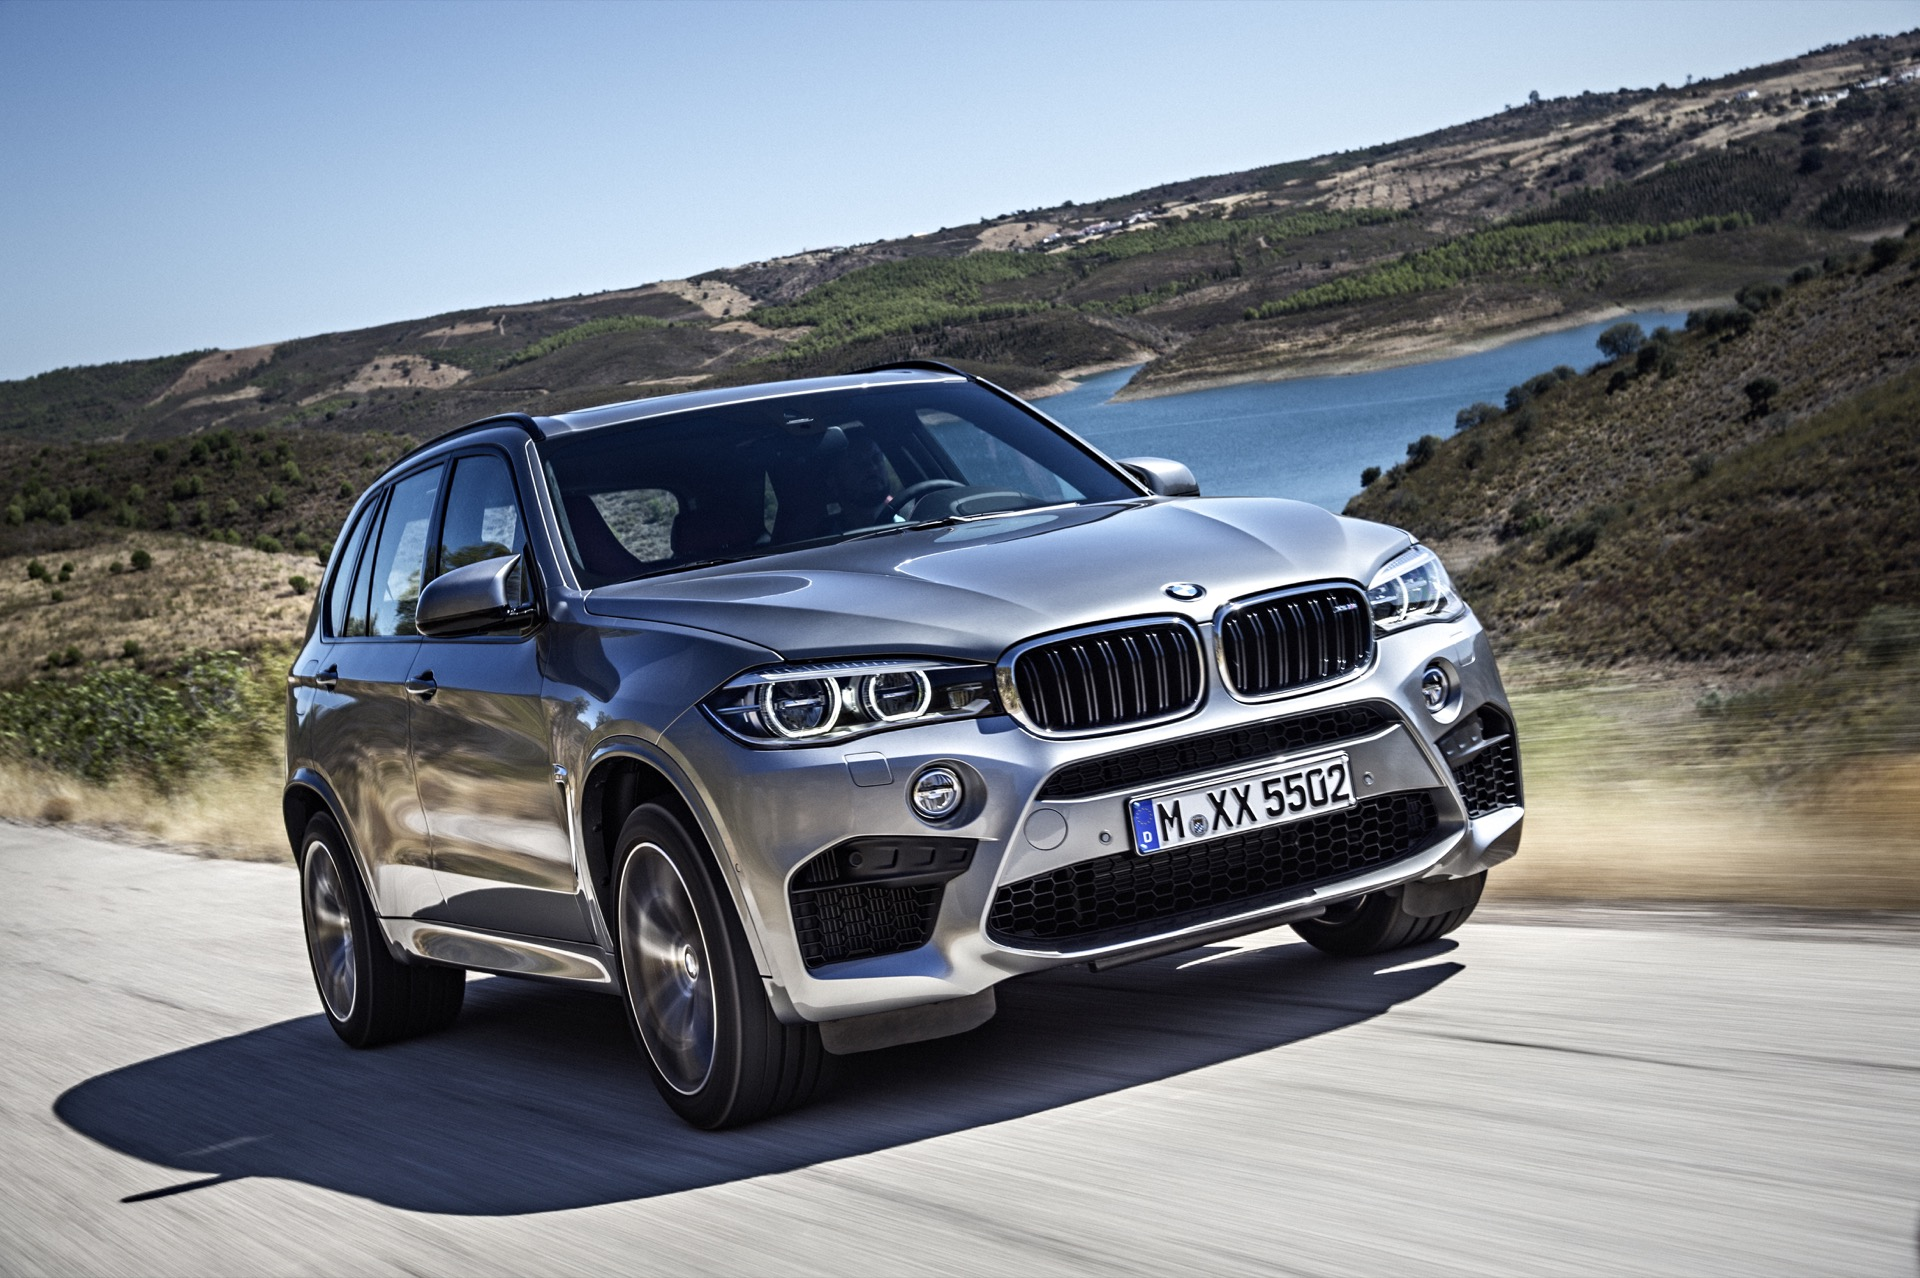 2015 bmw x5 styling review the car connection. Black Bedroom Furniture Sets. Home Design Ideas